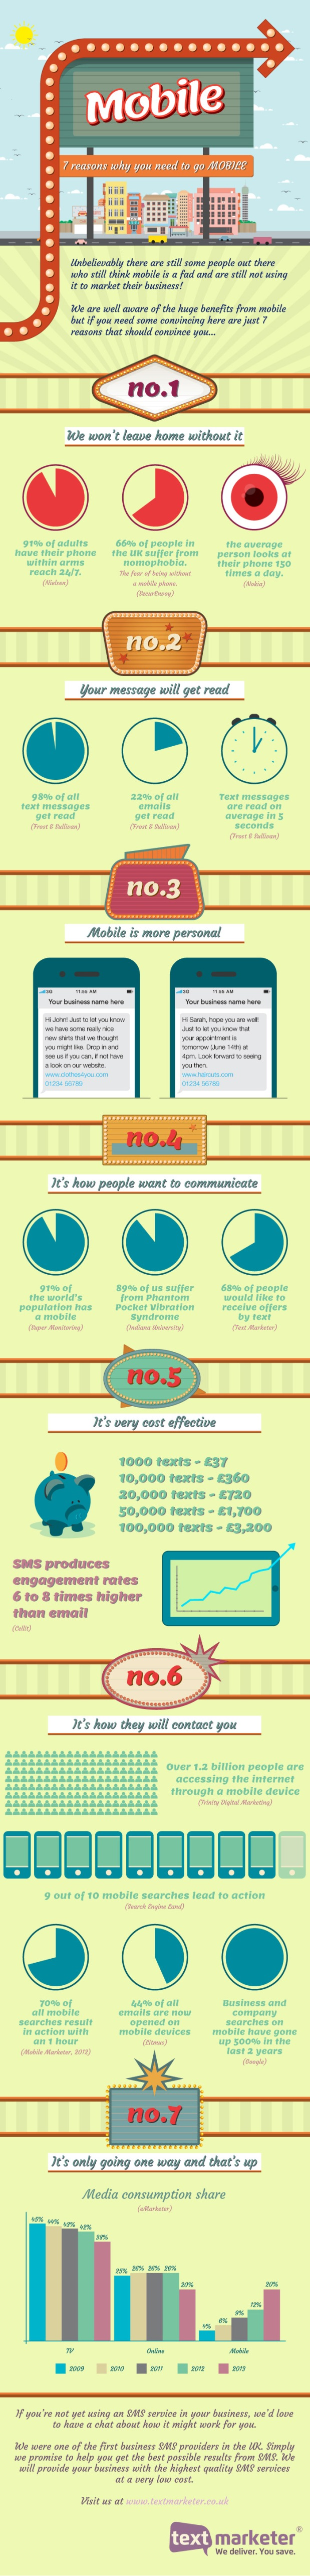 Seven Reasons why Your Brand Needs to go Mobile [INFOGRAPHIC]